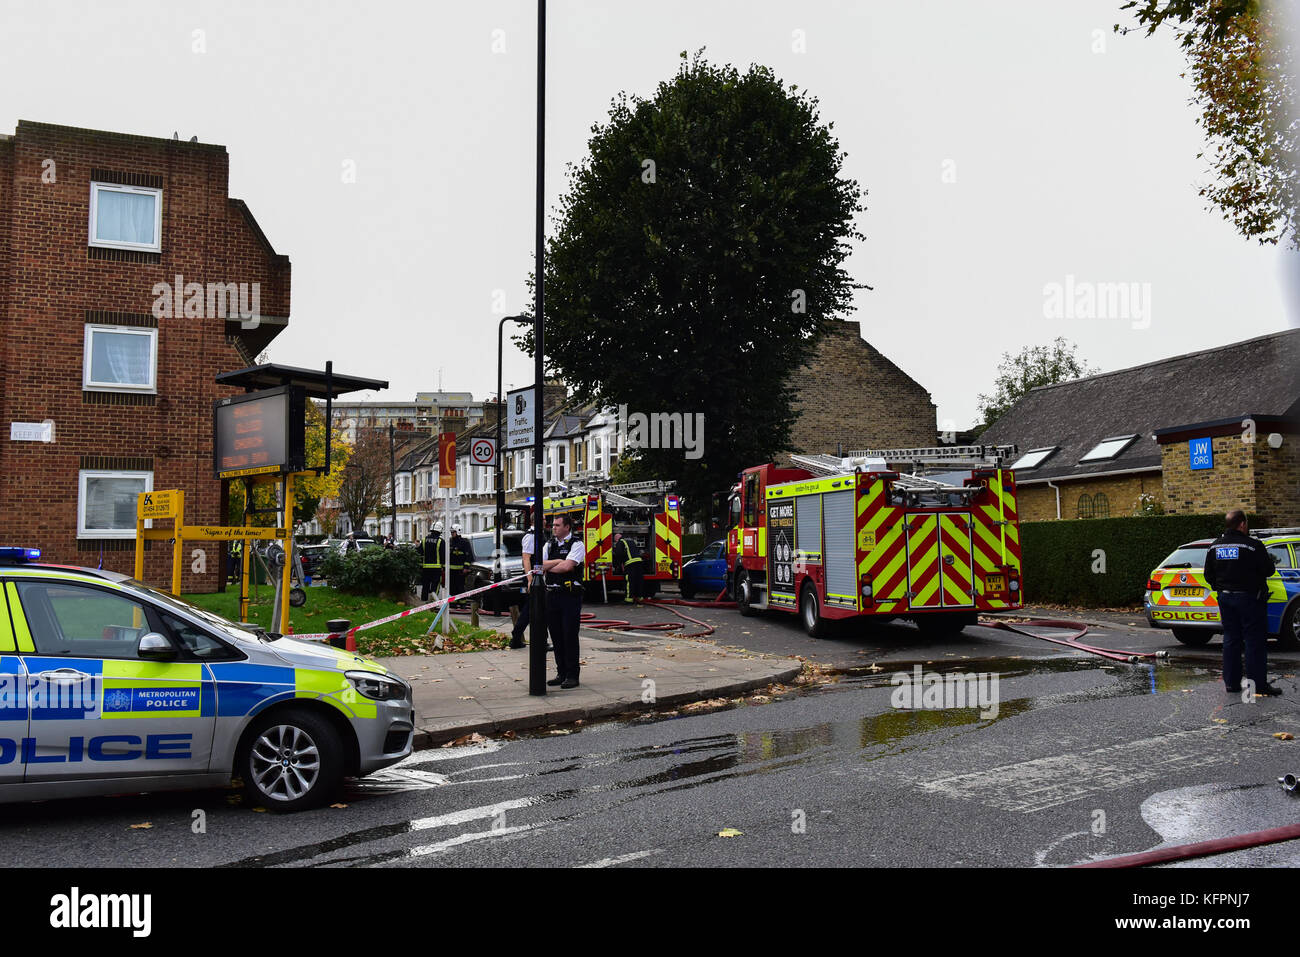 London, United Kingdom. 31st October 2017. A man has been rescued from a house fire in Leythe Road in Acton, London. - Stock Image